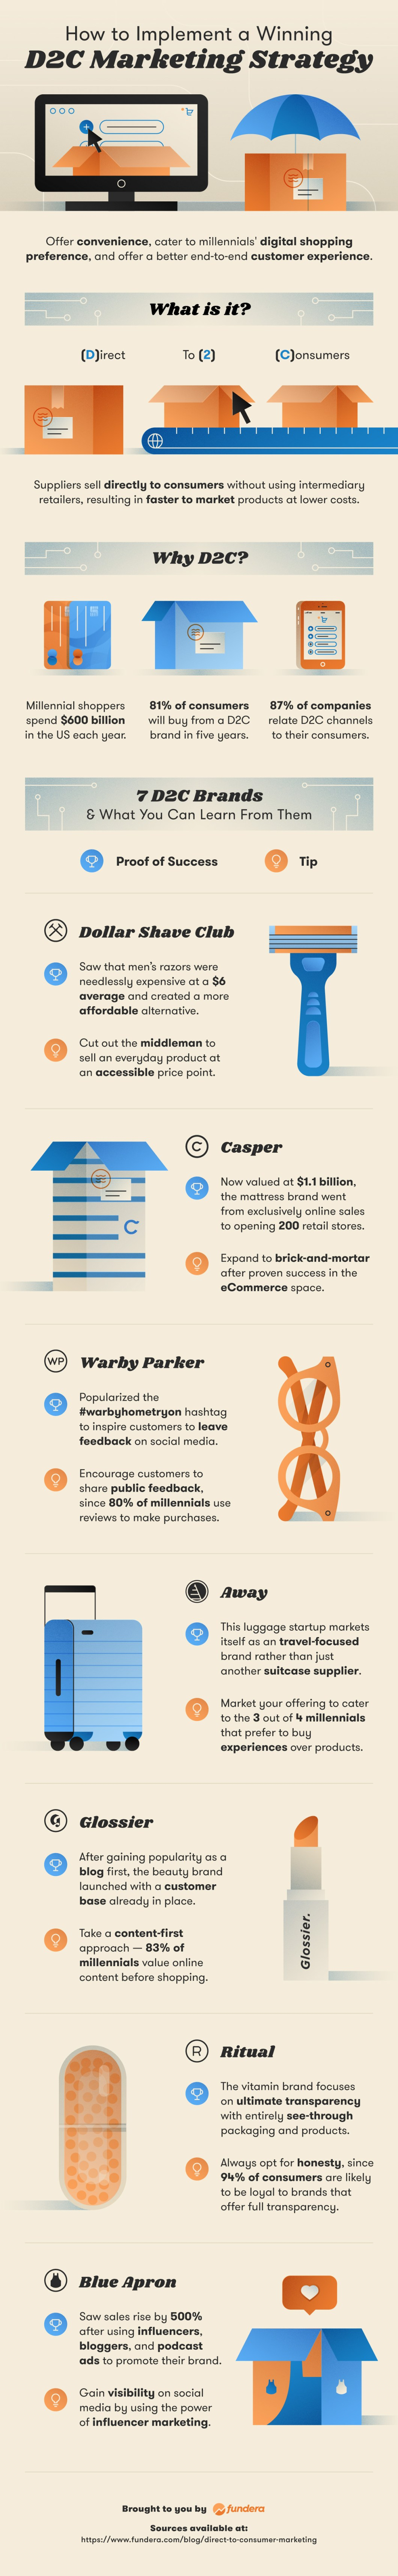 Why Millennial Consumers are Delighted by the Benefits of D2C Marketing - Infographic